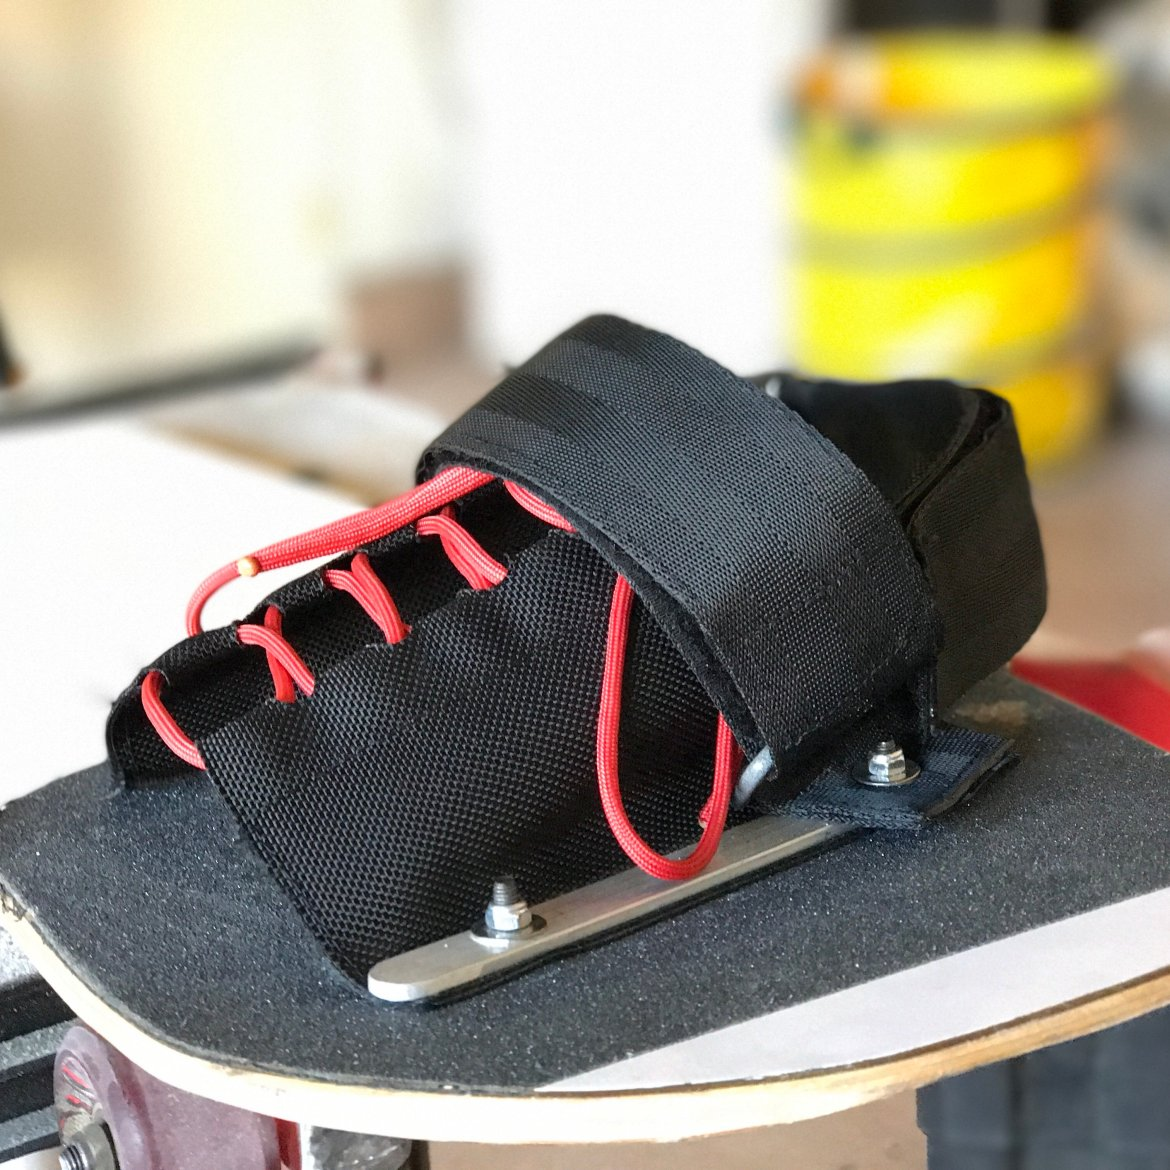 Stolen Basic Binding with Power Strap Added